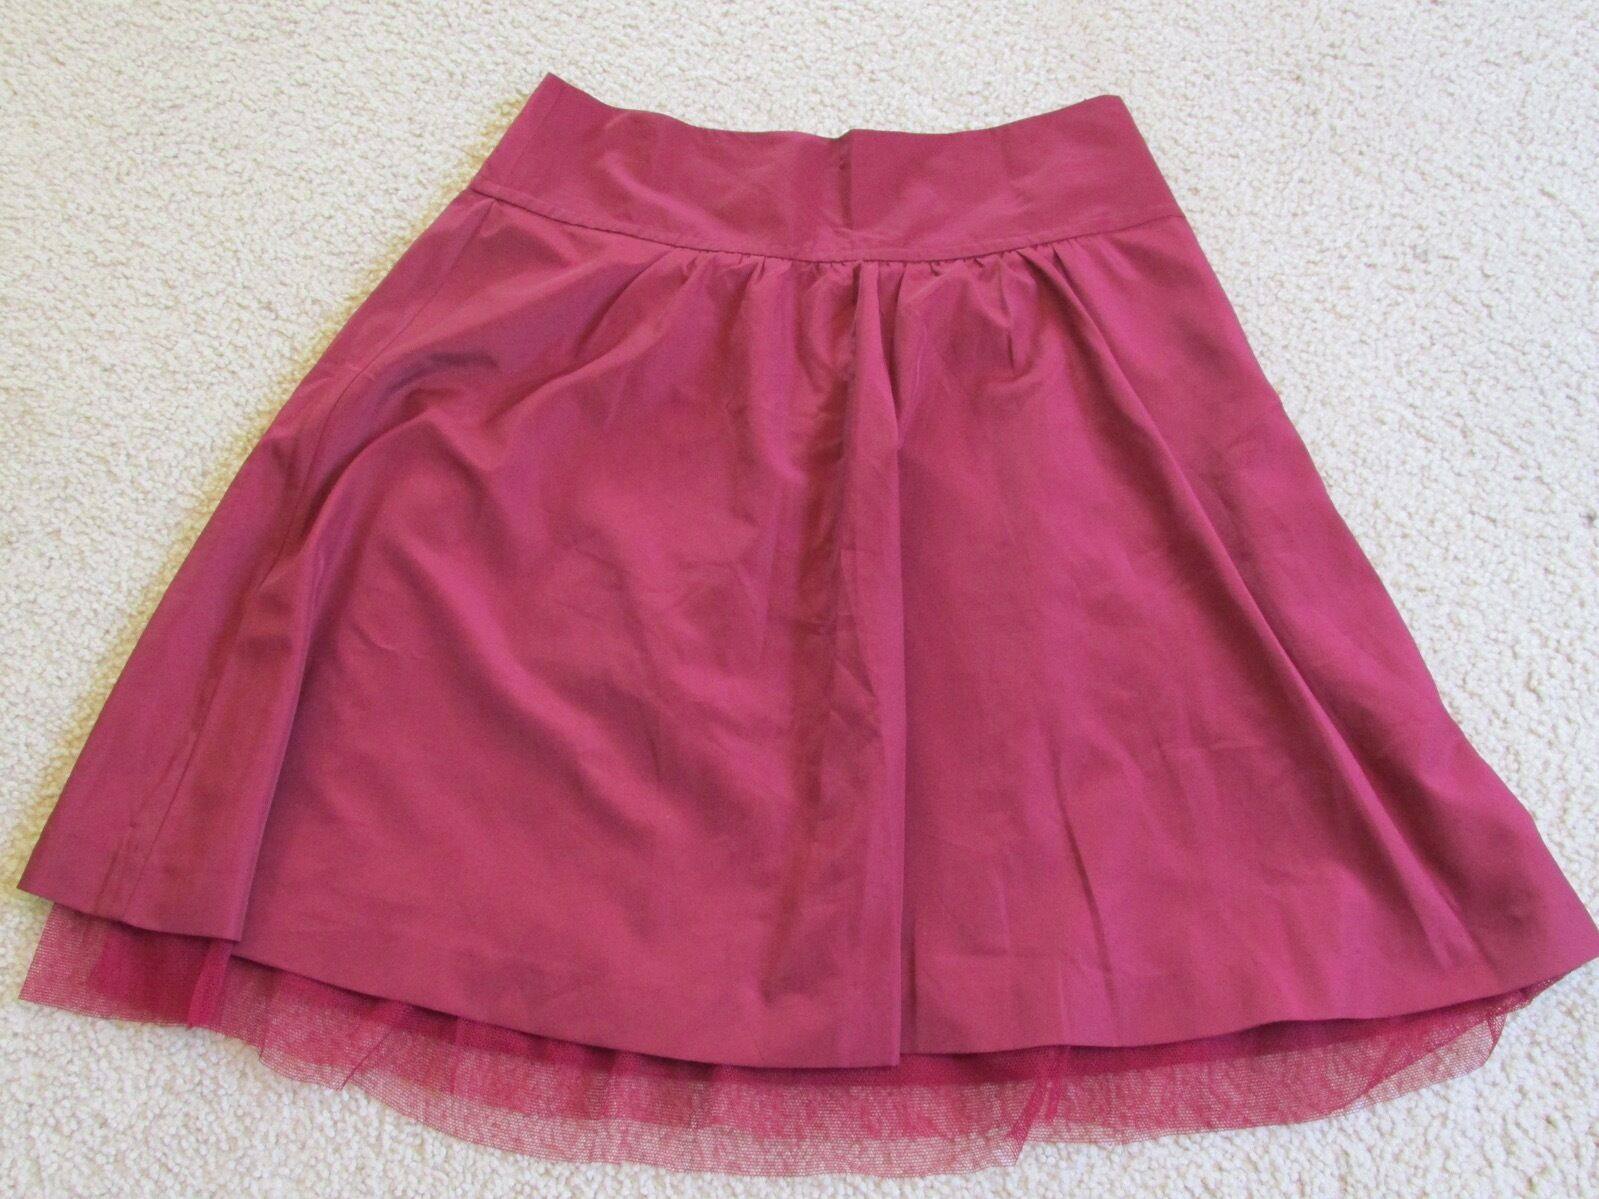 New with Tags Women's The Limited Dark Wine Red Ruffle Skirt Tulle Edge Size 4